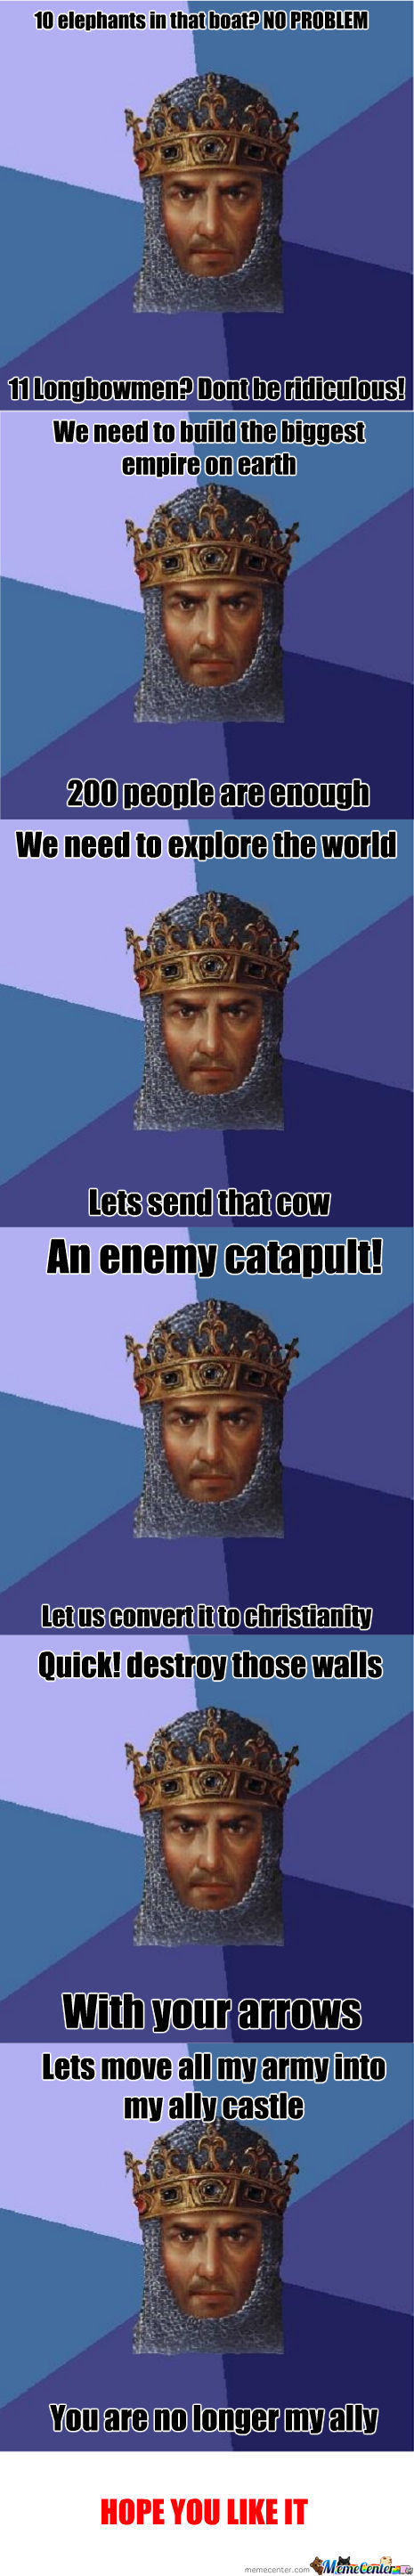 Age Of Empires Meme Recopilation